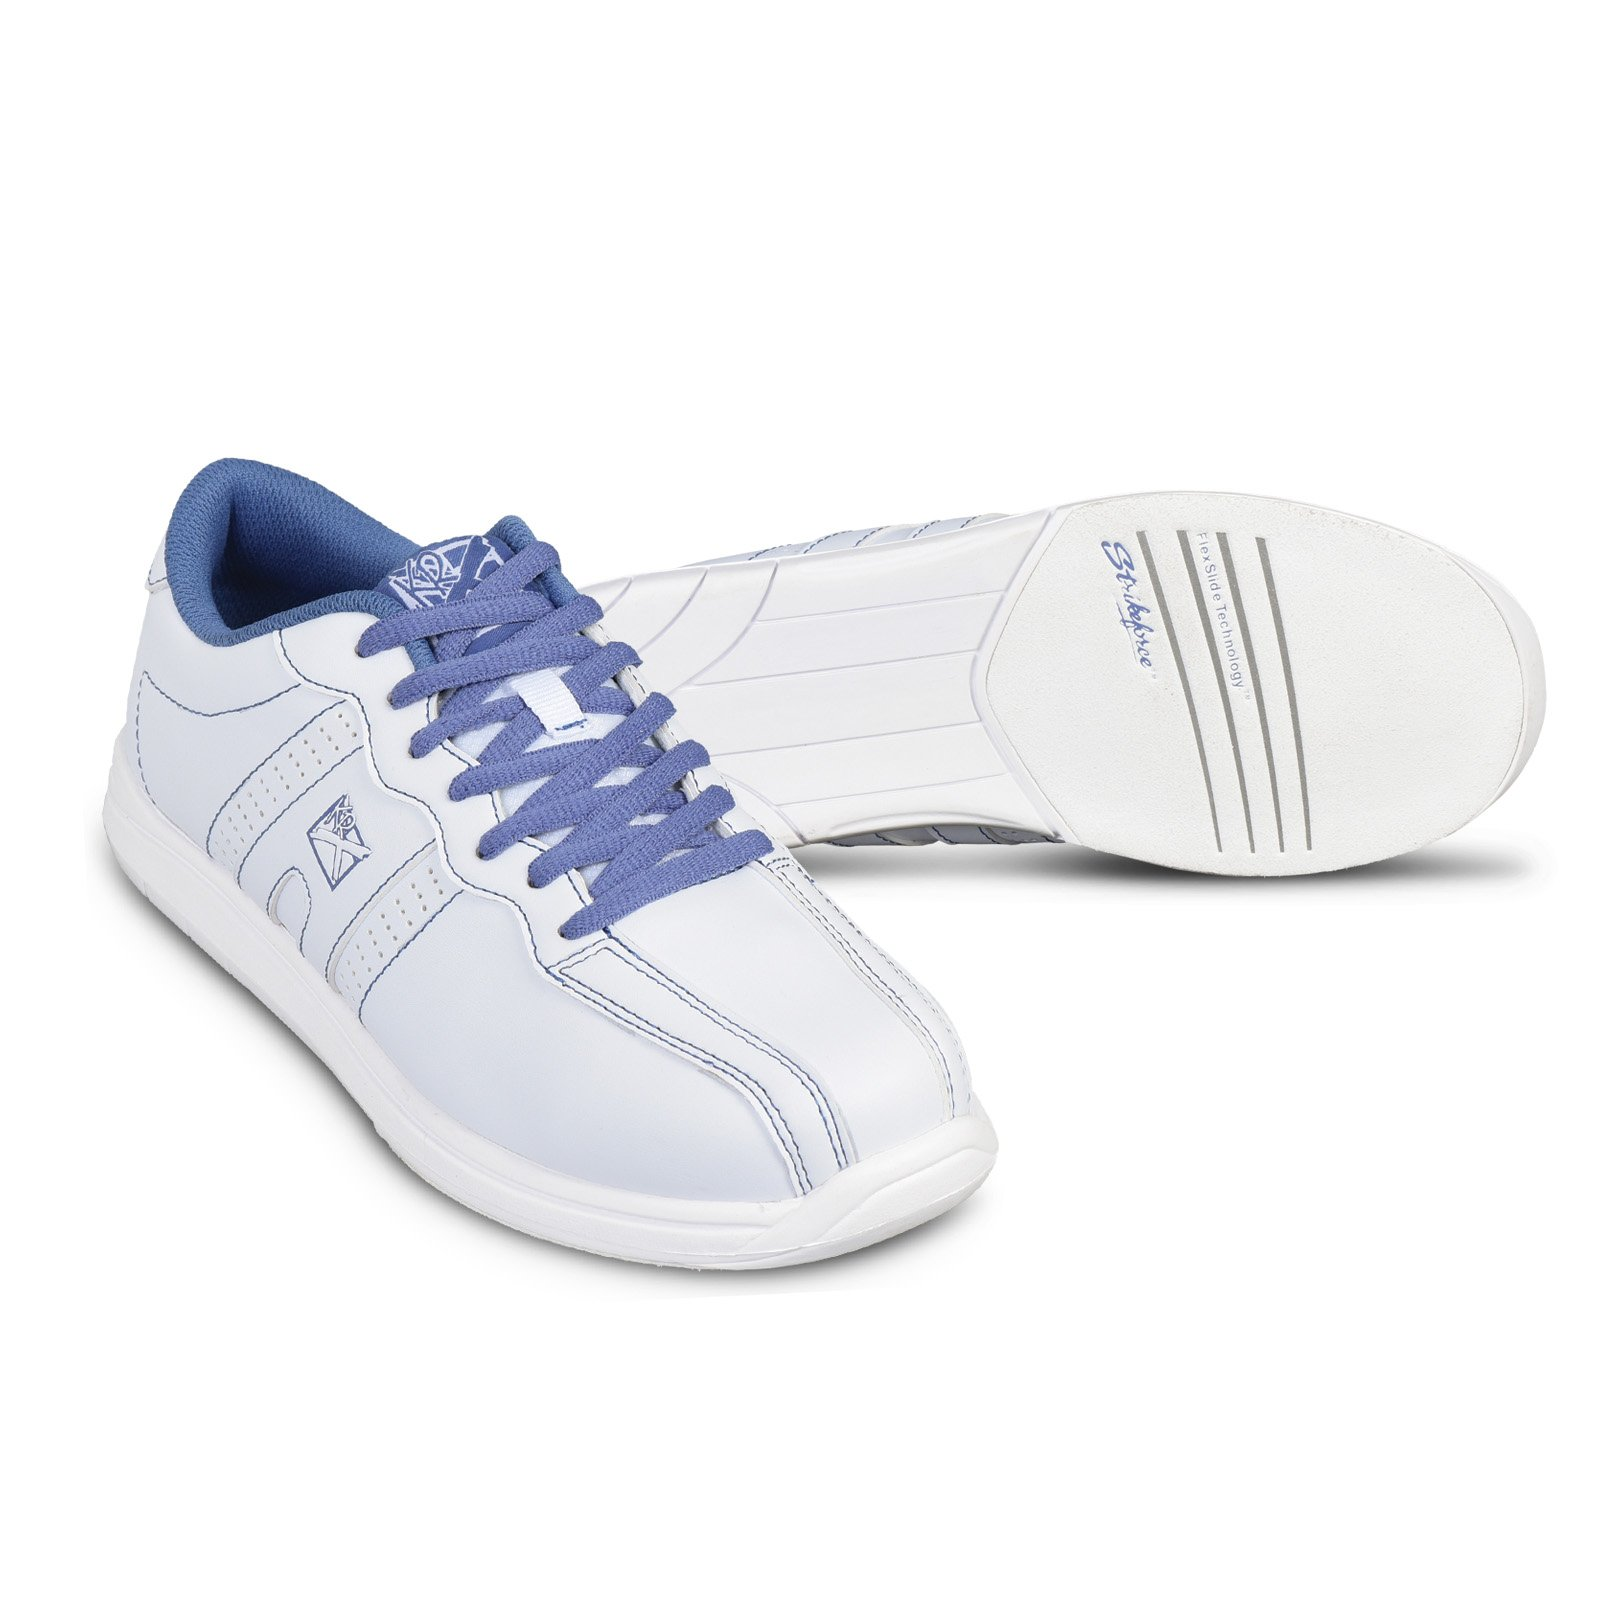 KR Strikeforce Women's O.P.P Bowling Shoes, White/Periwinkle, Size 6 by KR Strikeforce